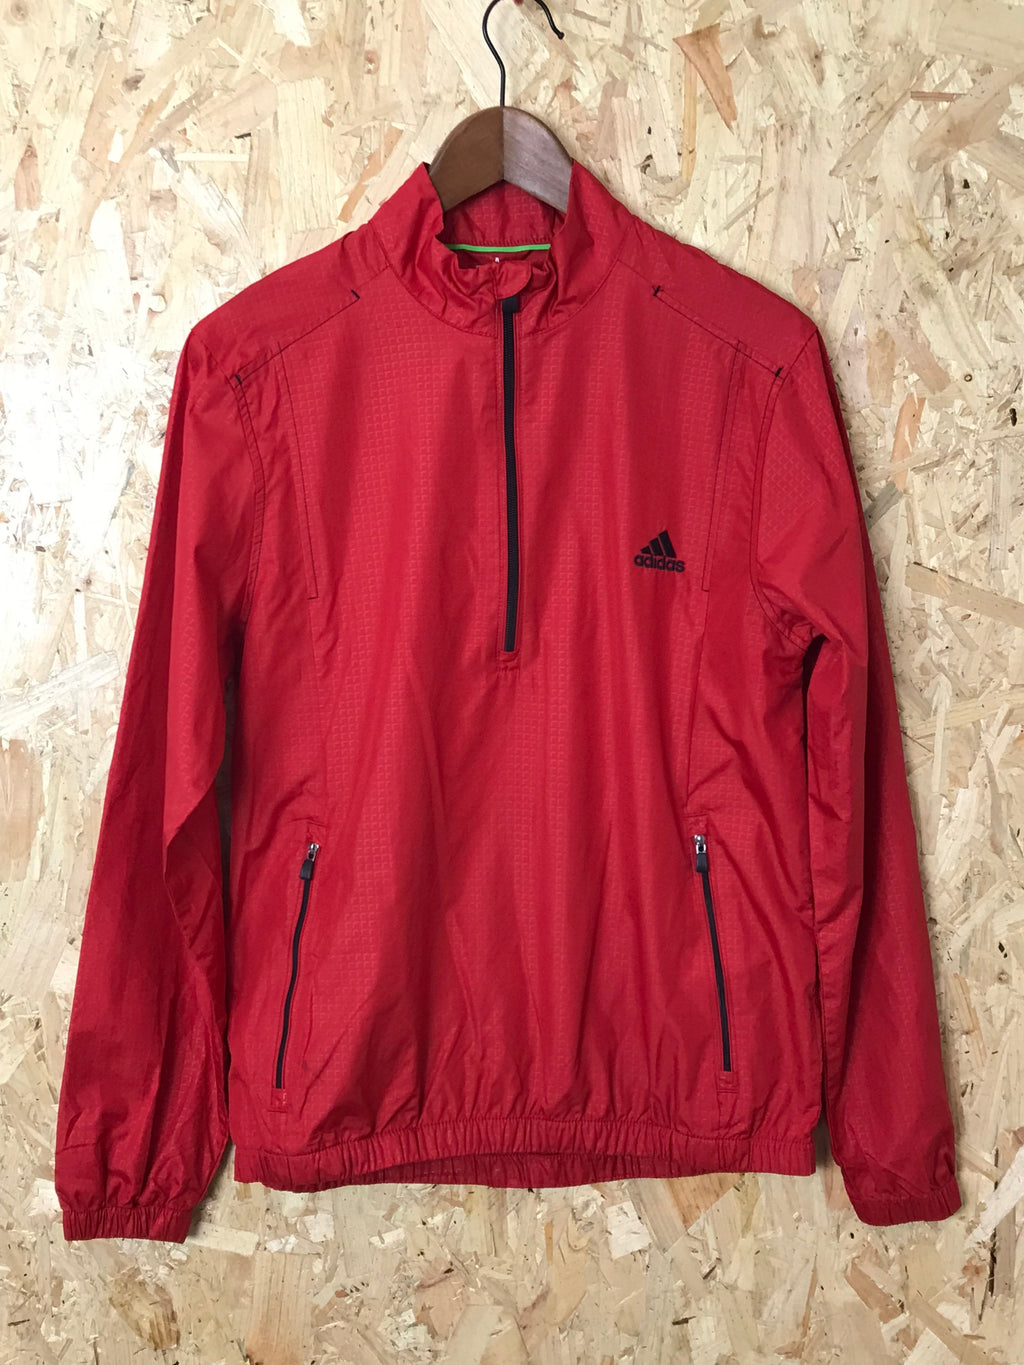 Adidas Golf Windbreaker